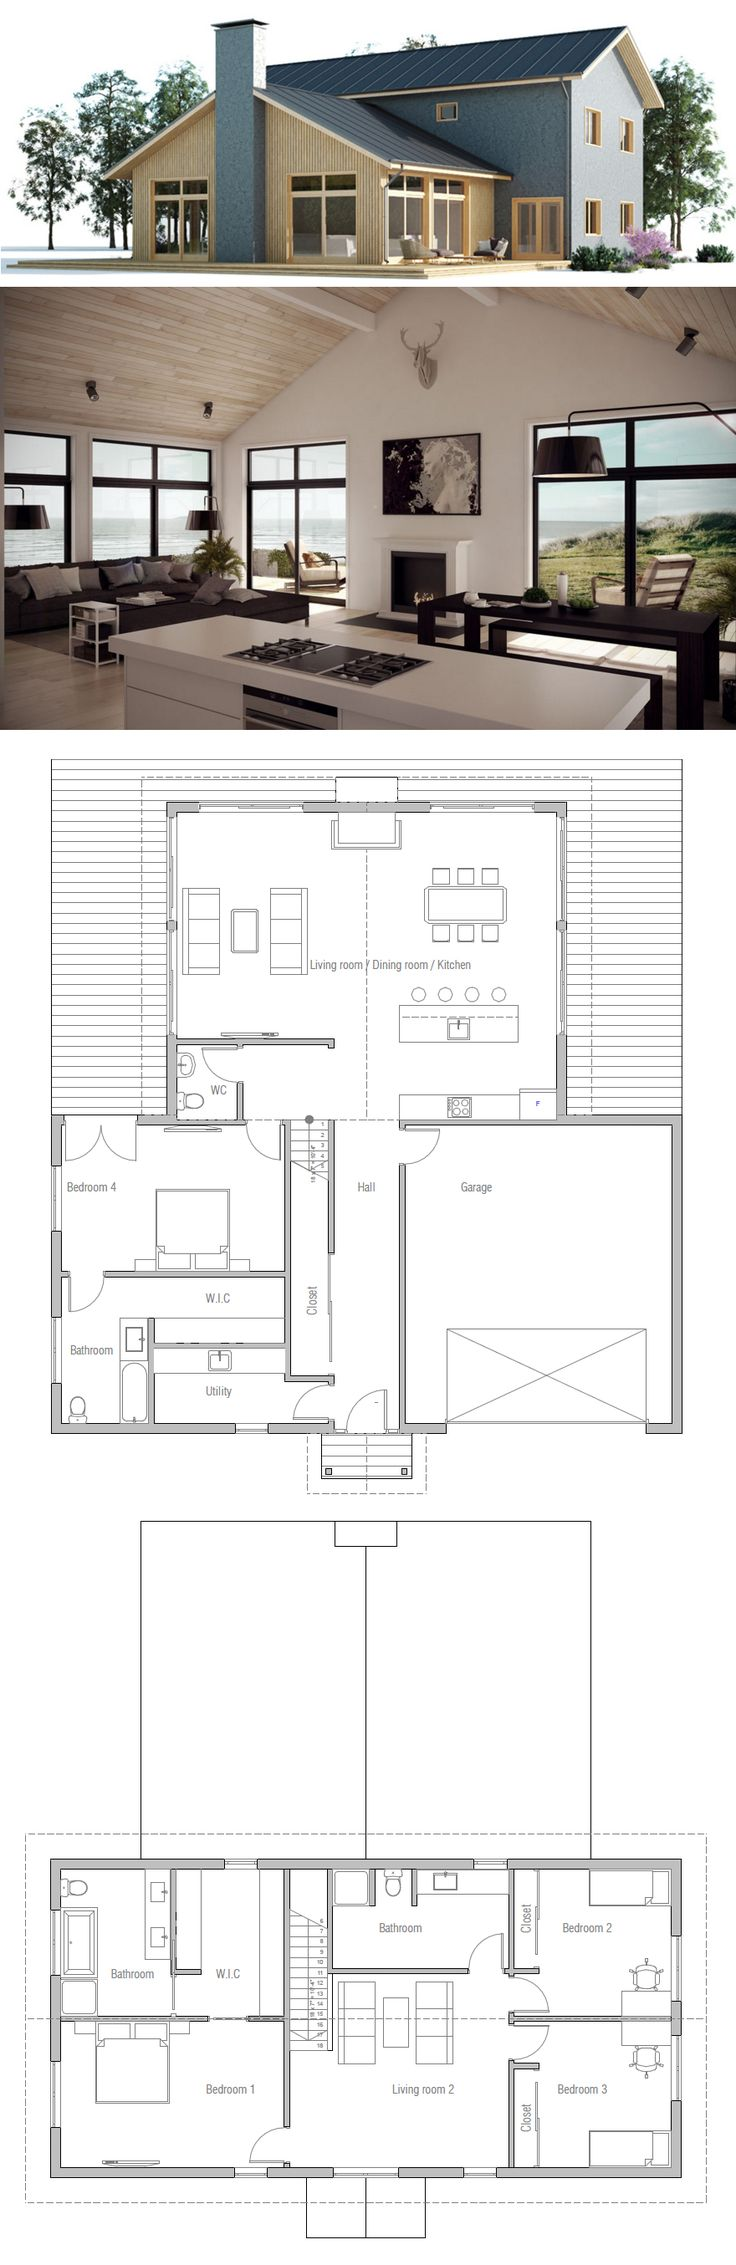 Cool plan change bedroom 4 to a